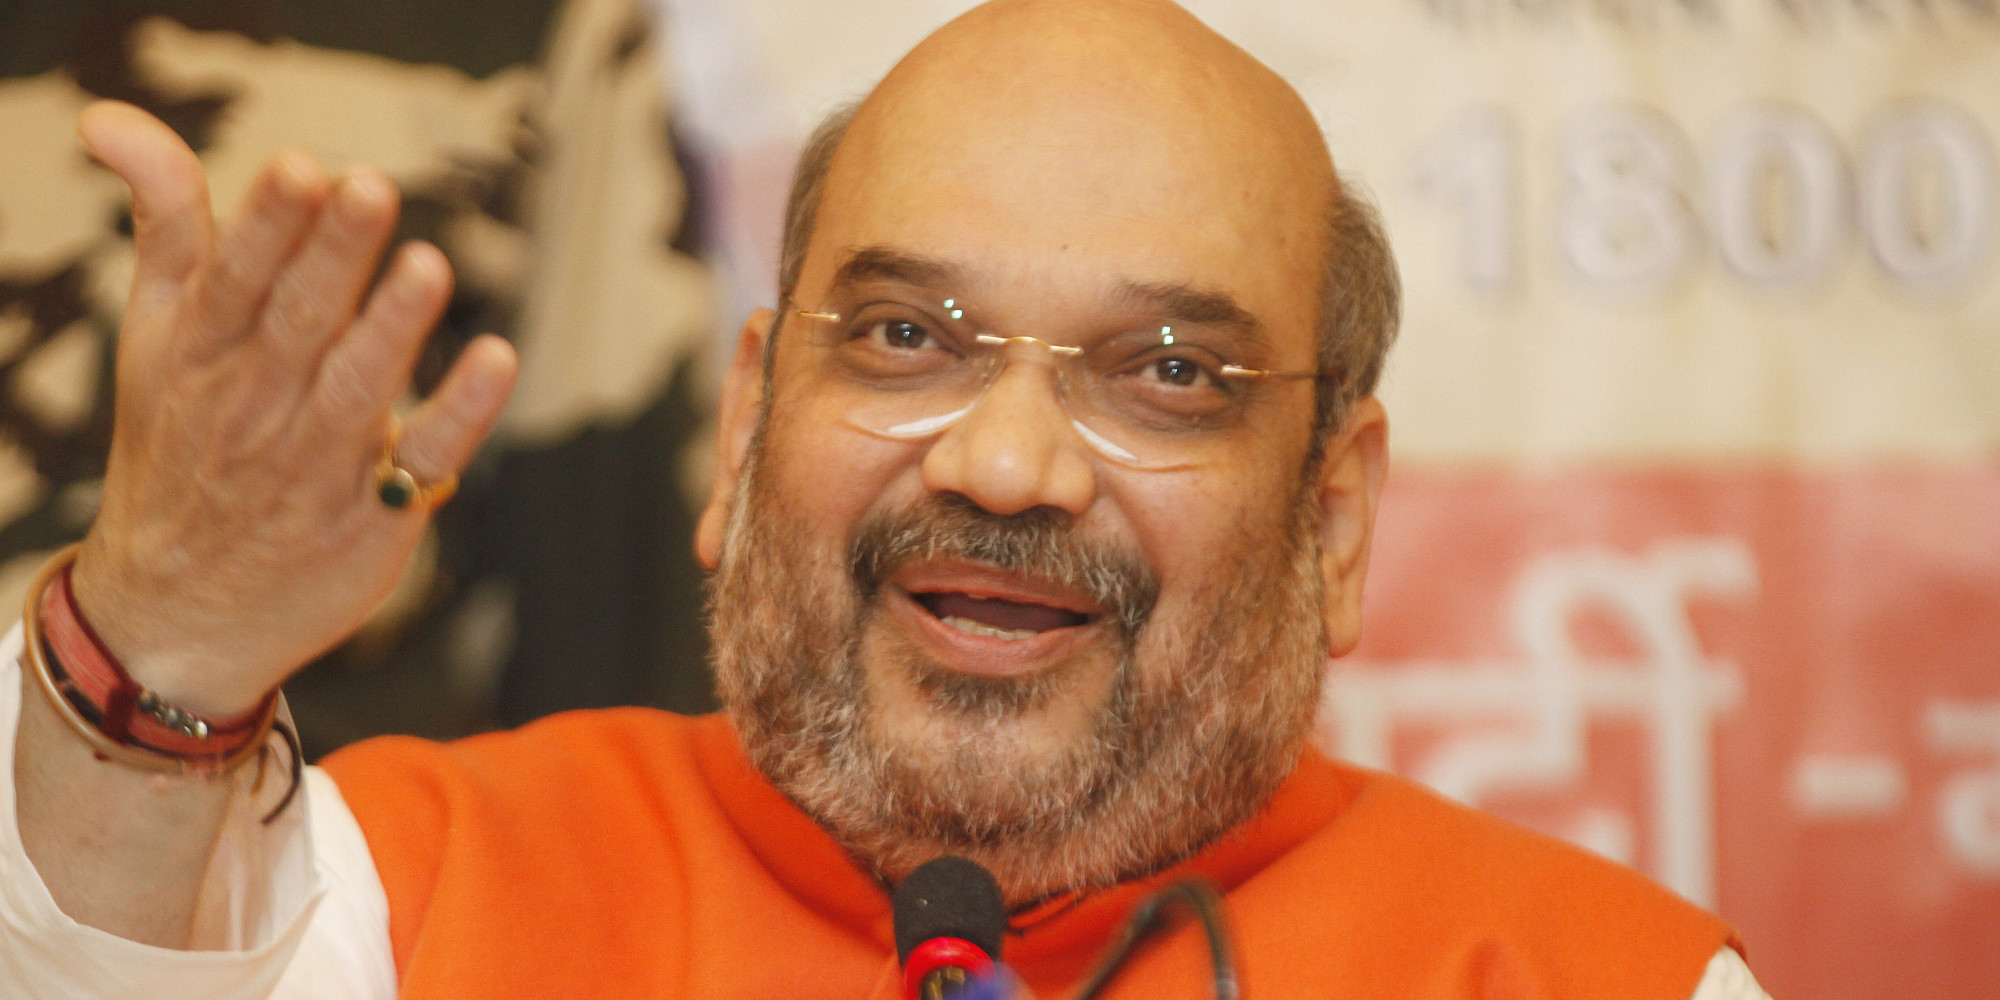 BJP Chief Amit Shah has lunch at BJP worker's house, interacts with family